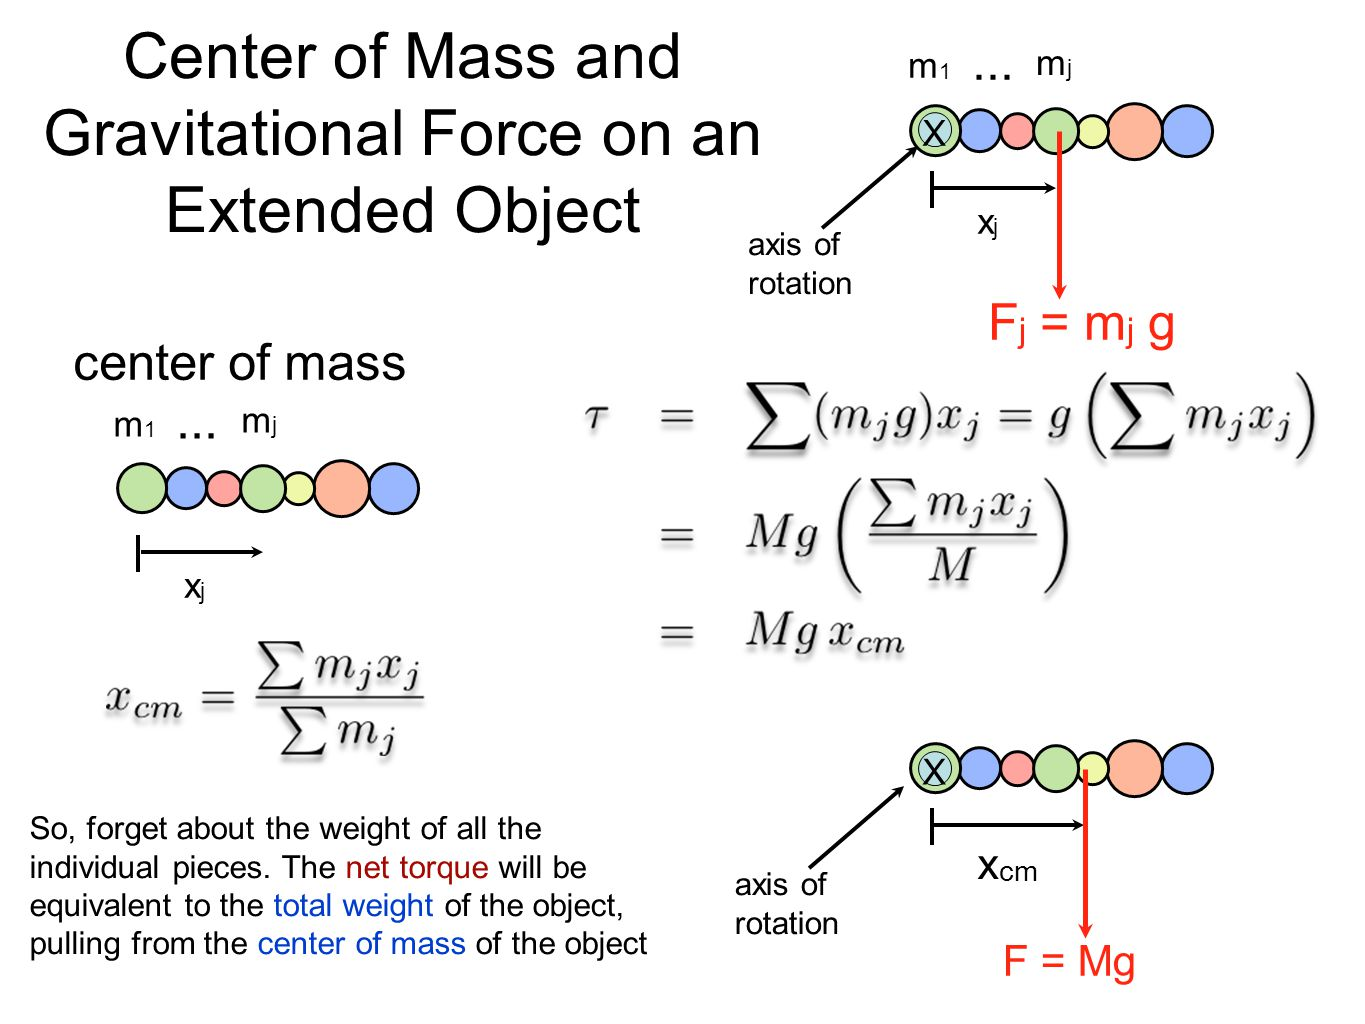 Center of Mass and Gravitational Force on an Extended Object